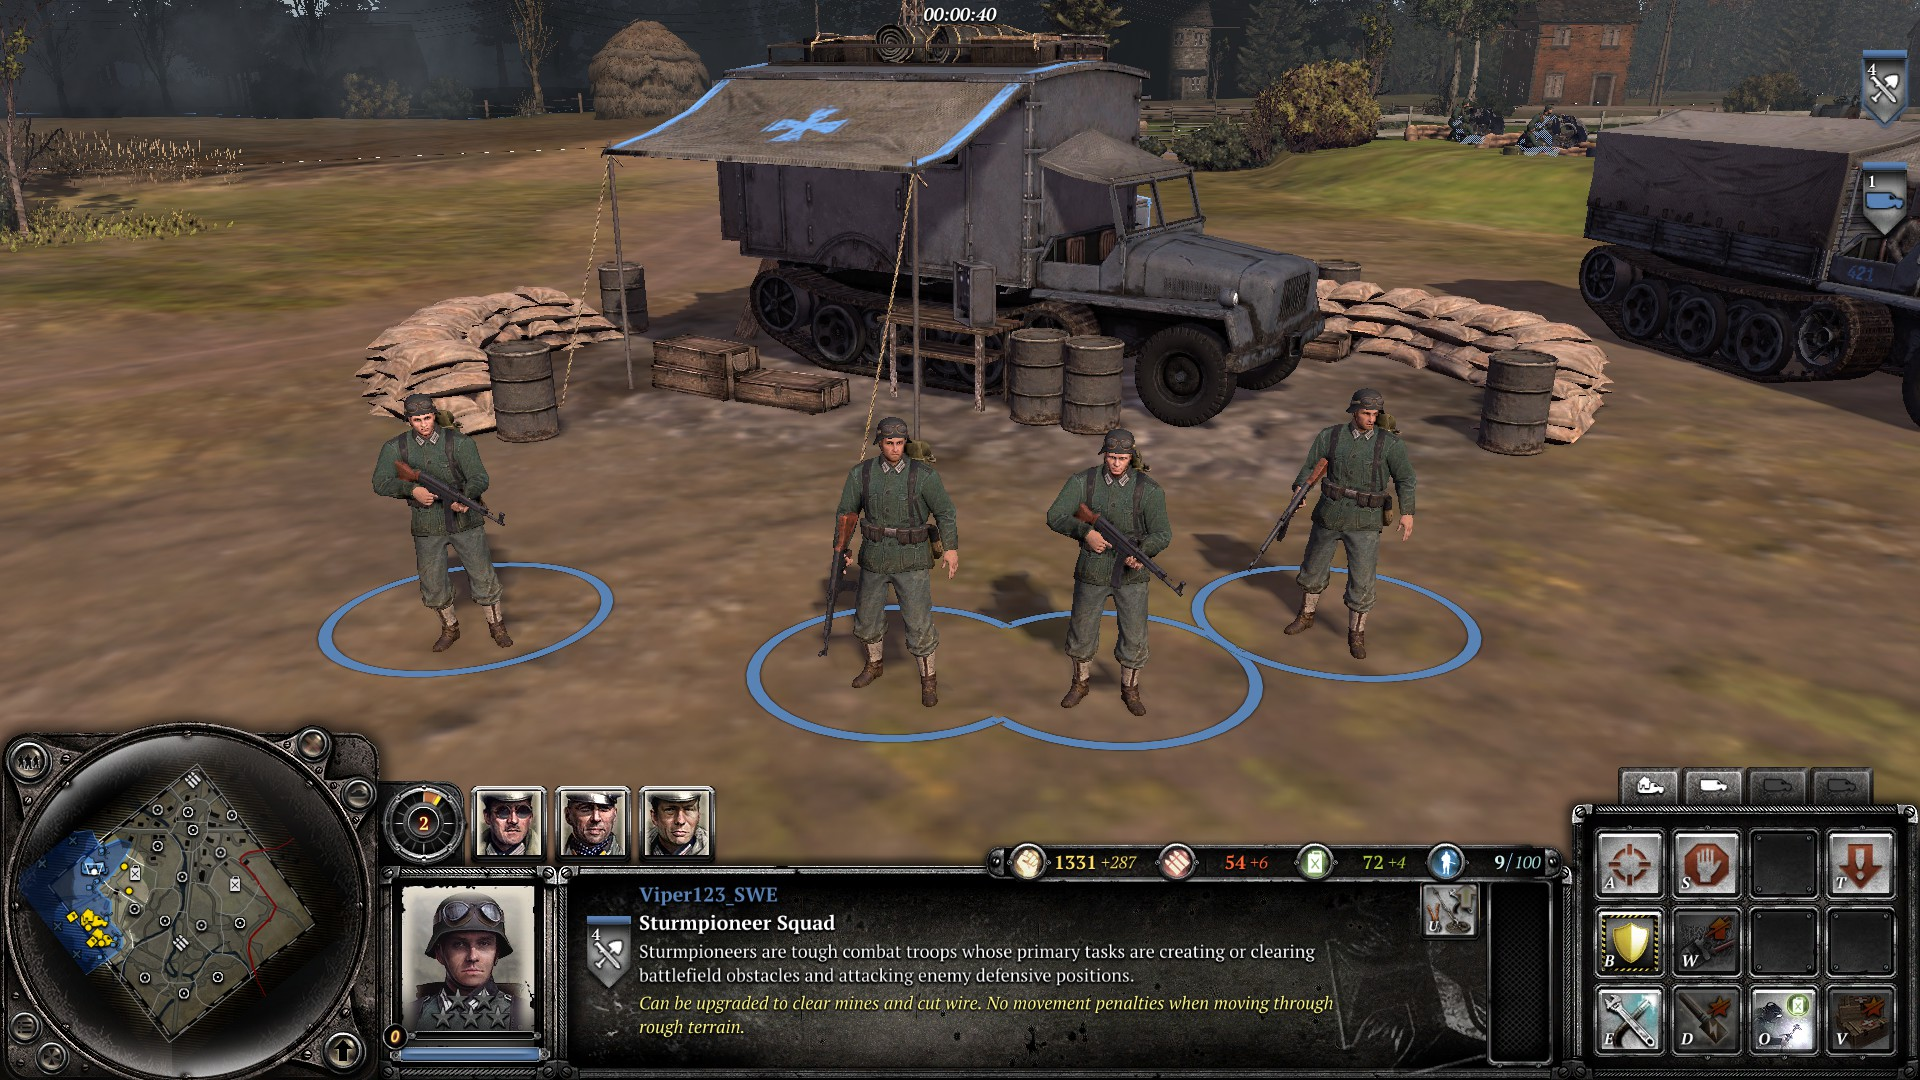 Steam cloud company of heroes zombies